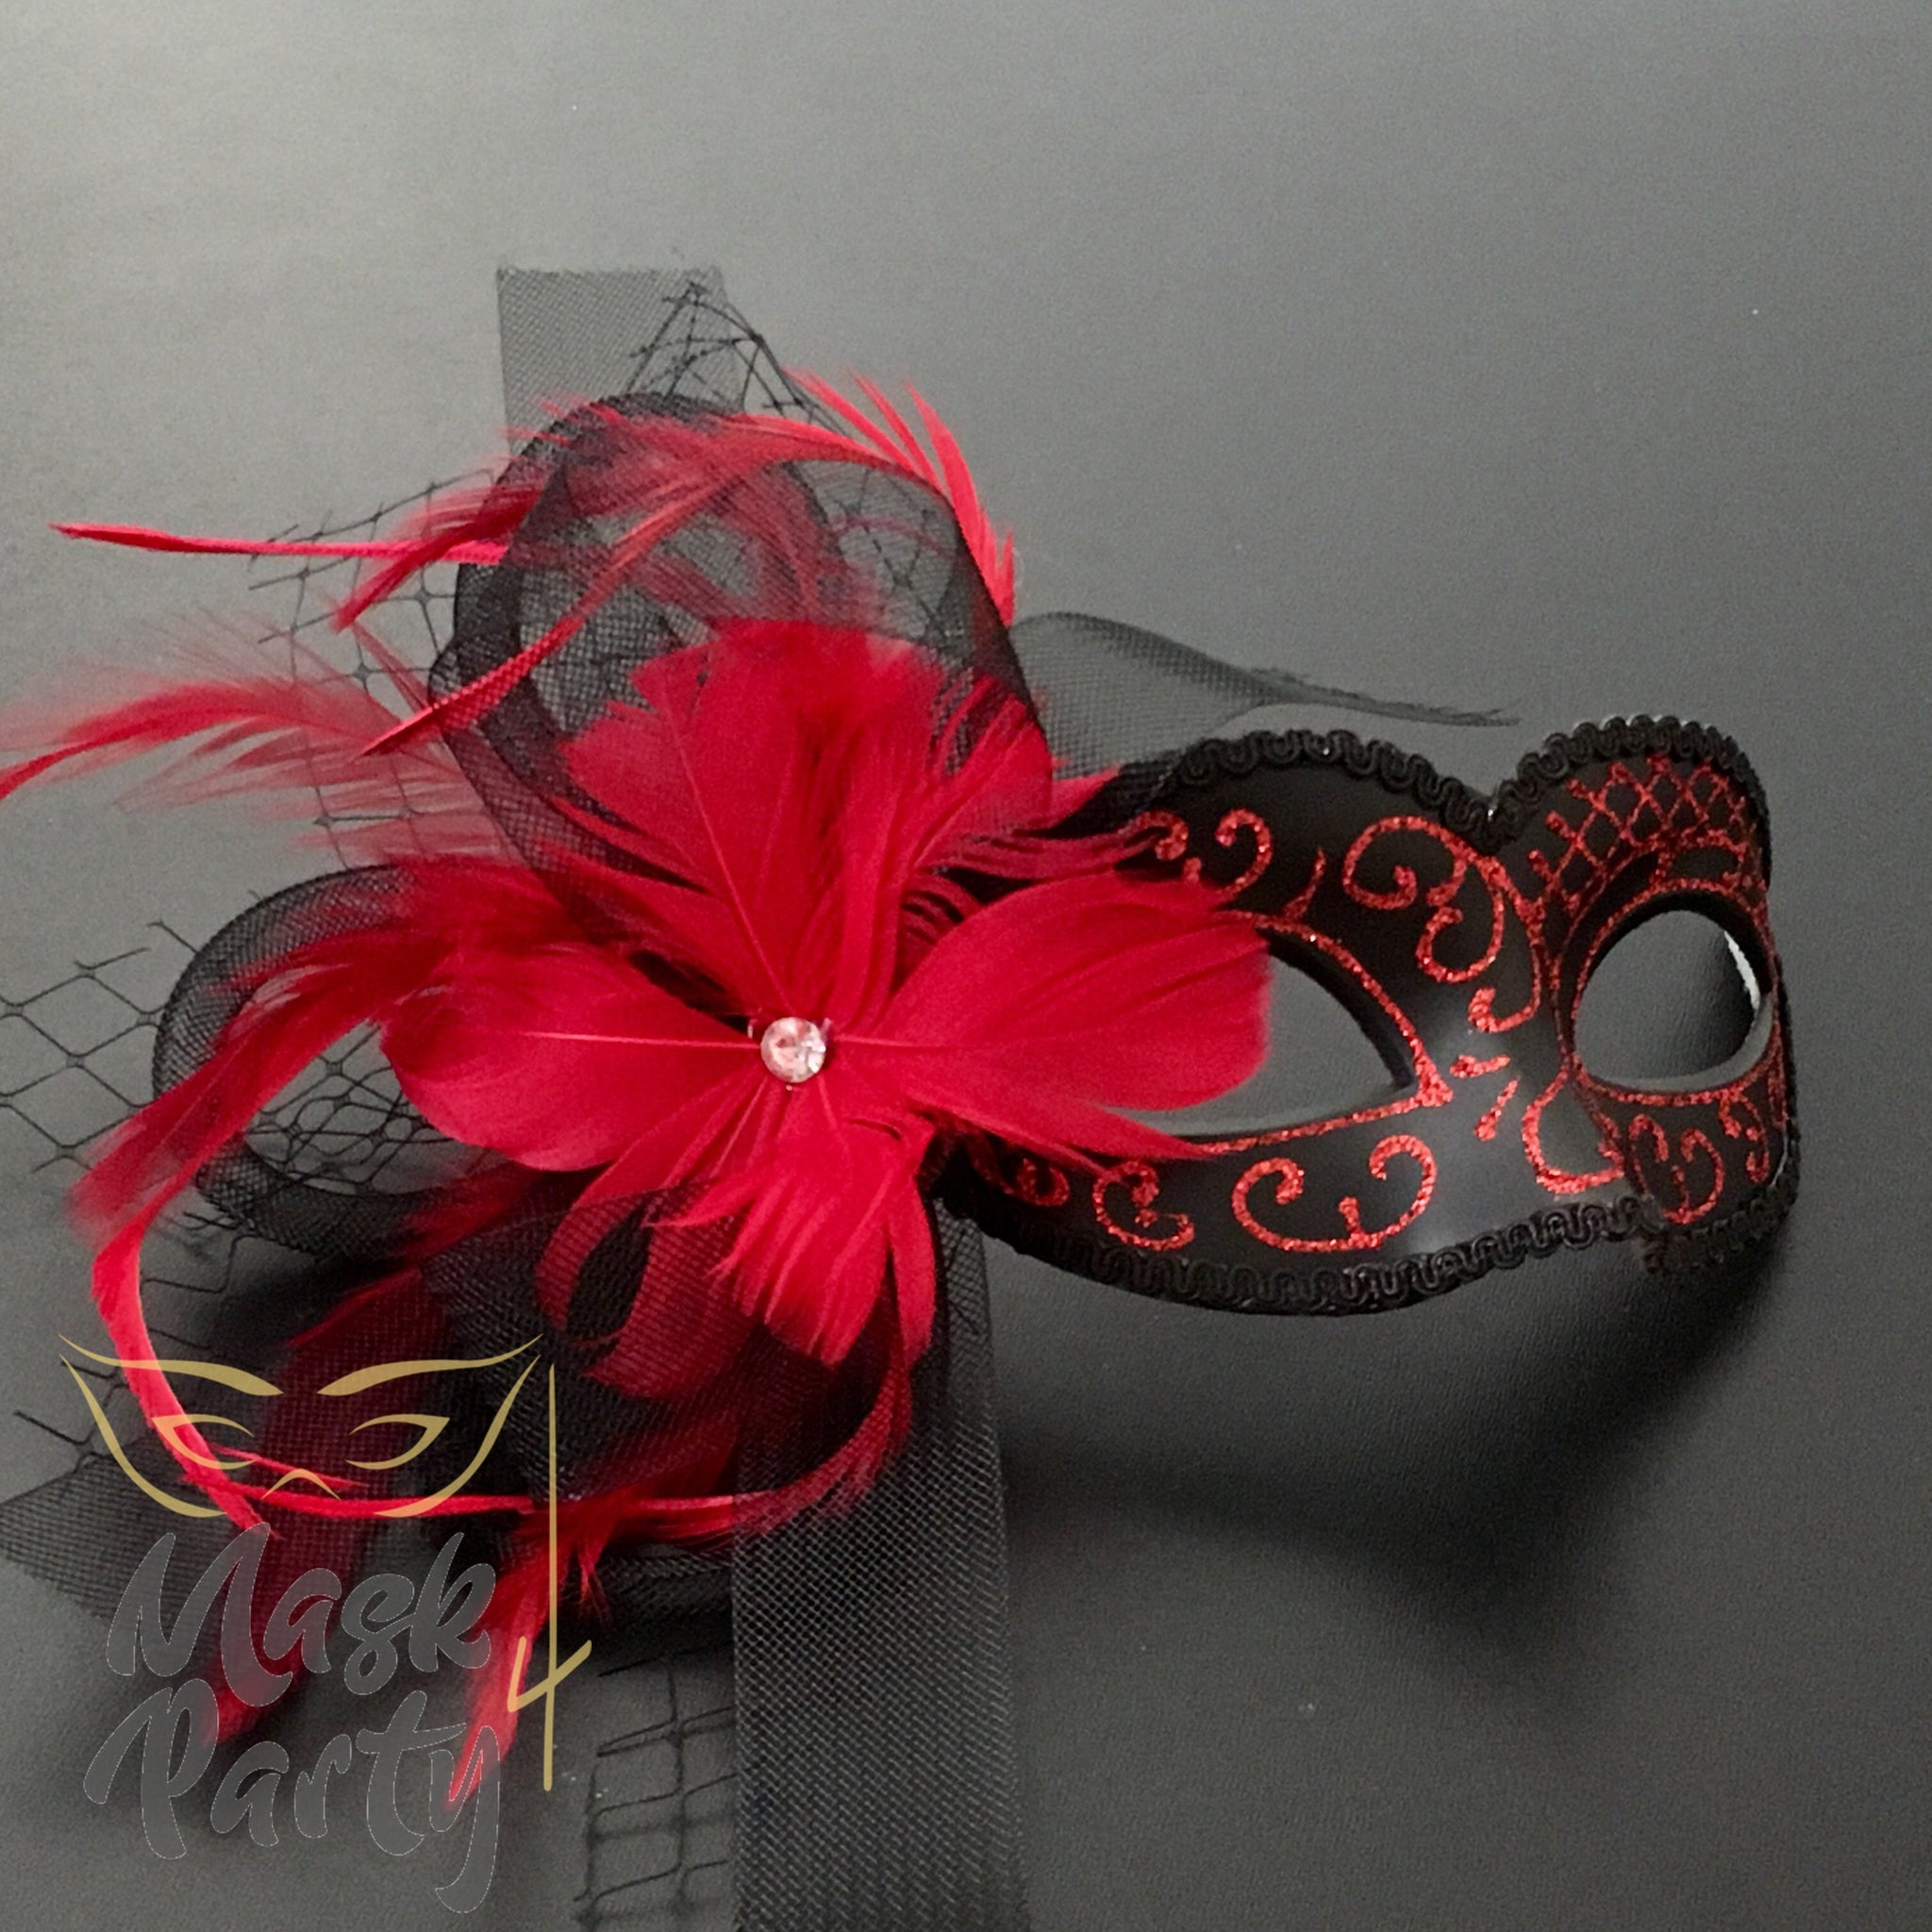 New - Masquerade - Veil W/ Feather - Red/Black